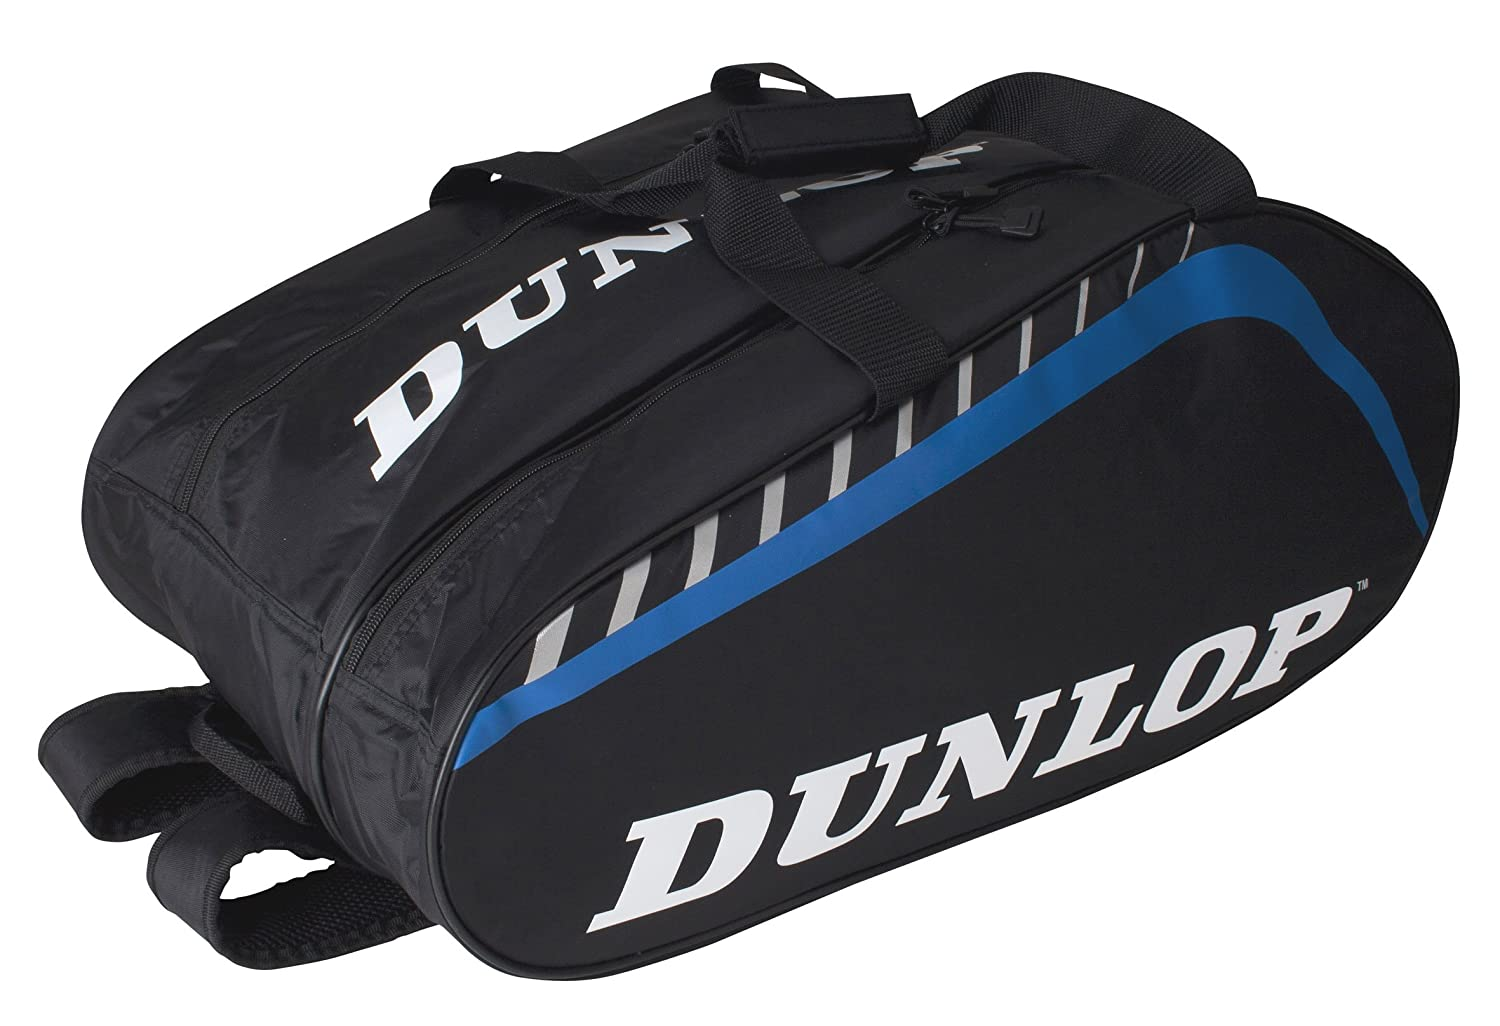 DUNLOP Paletero Play Grande - Mochila, Color Negro/Azul: Amazon.es ...